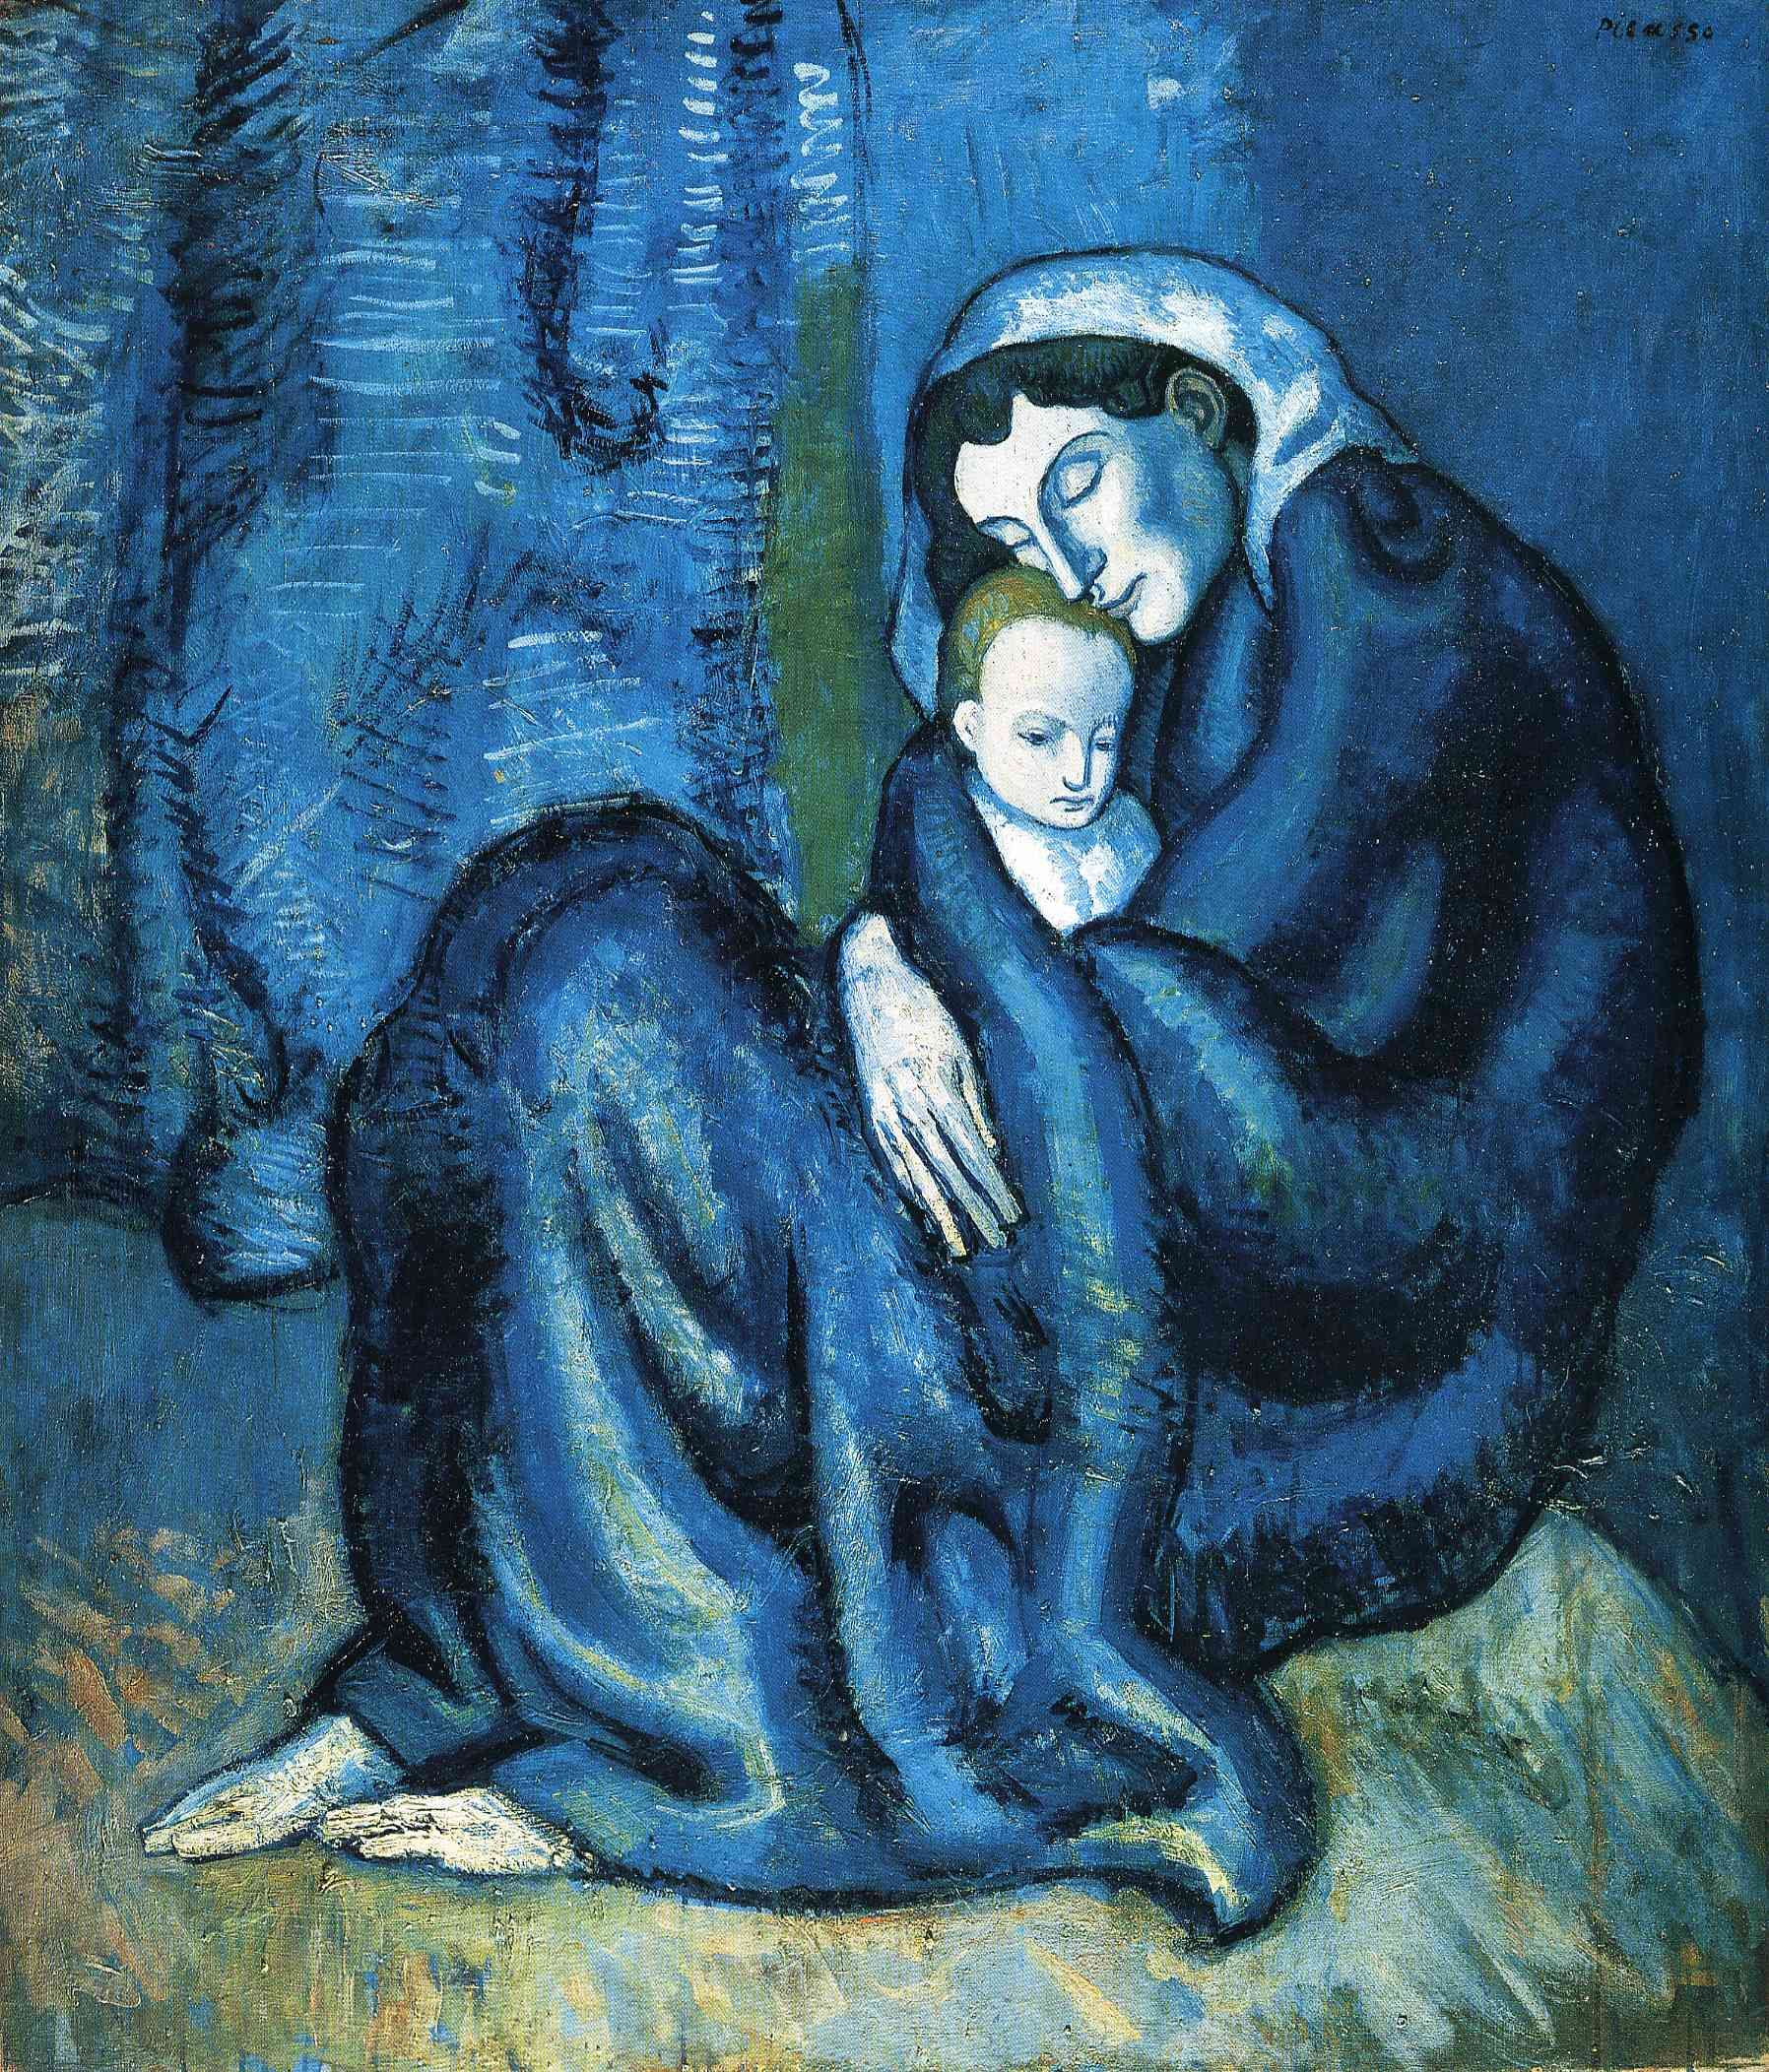 Außergewöhnlich blue paintings images | Mother and child - Pablo Picasso @PF_99